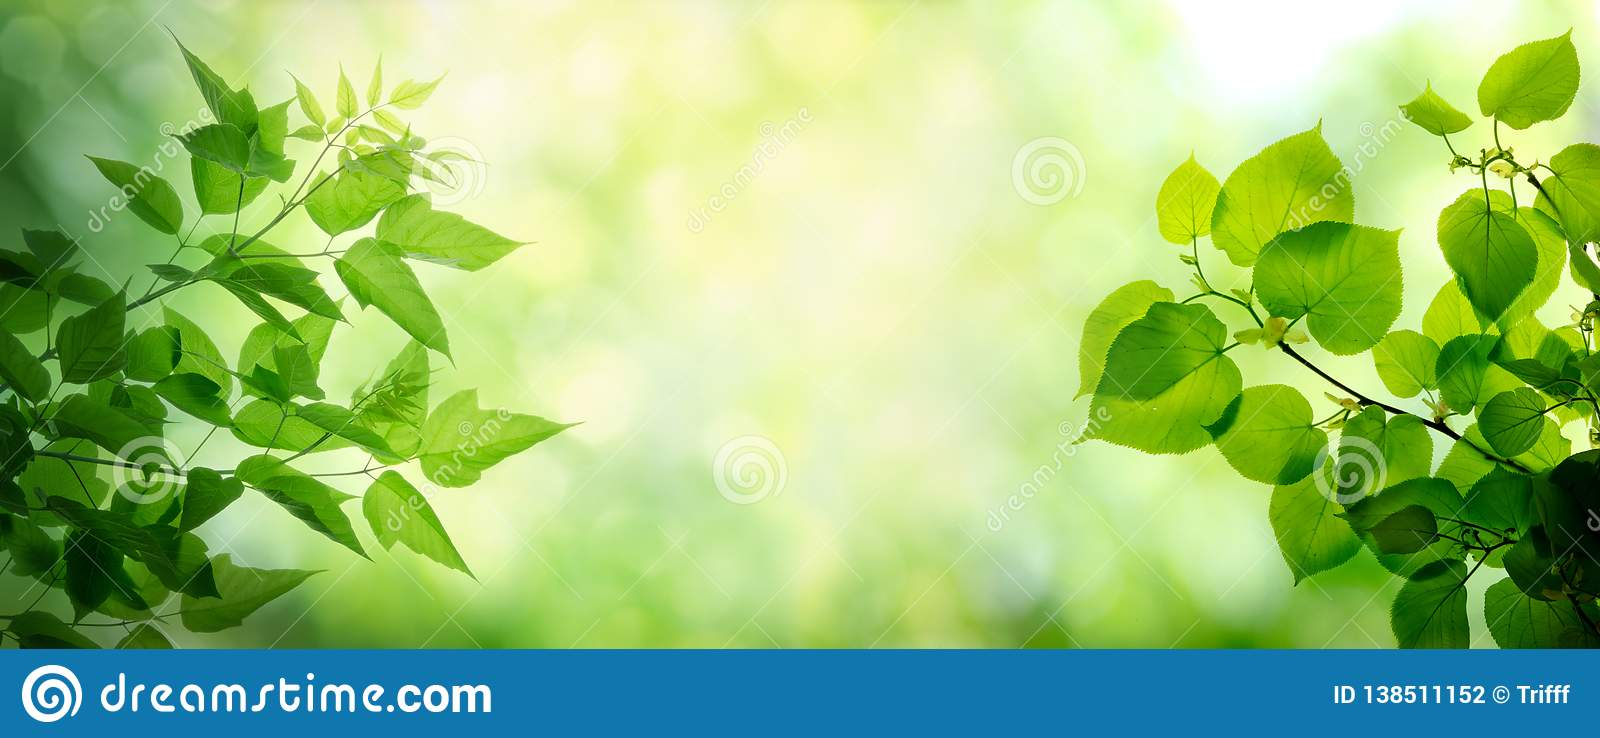 Young leaves on the branches of maple and lime tree. Spring and summer background